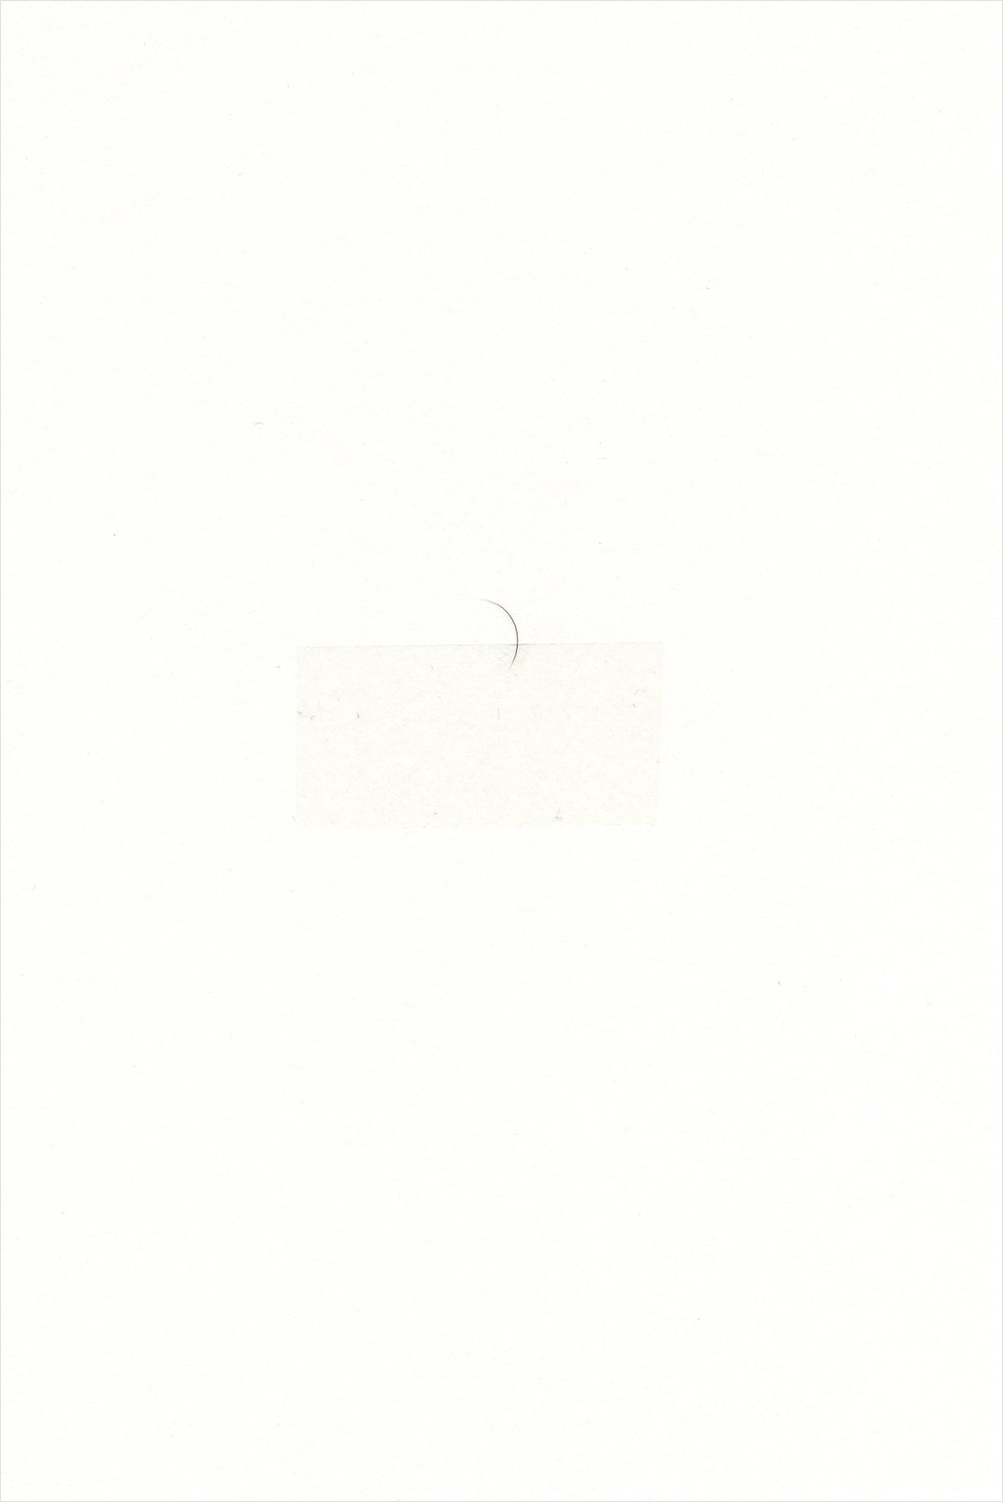 Untitled, 2009 - Eyelash and sellotape on paper; 15 X 10 cm